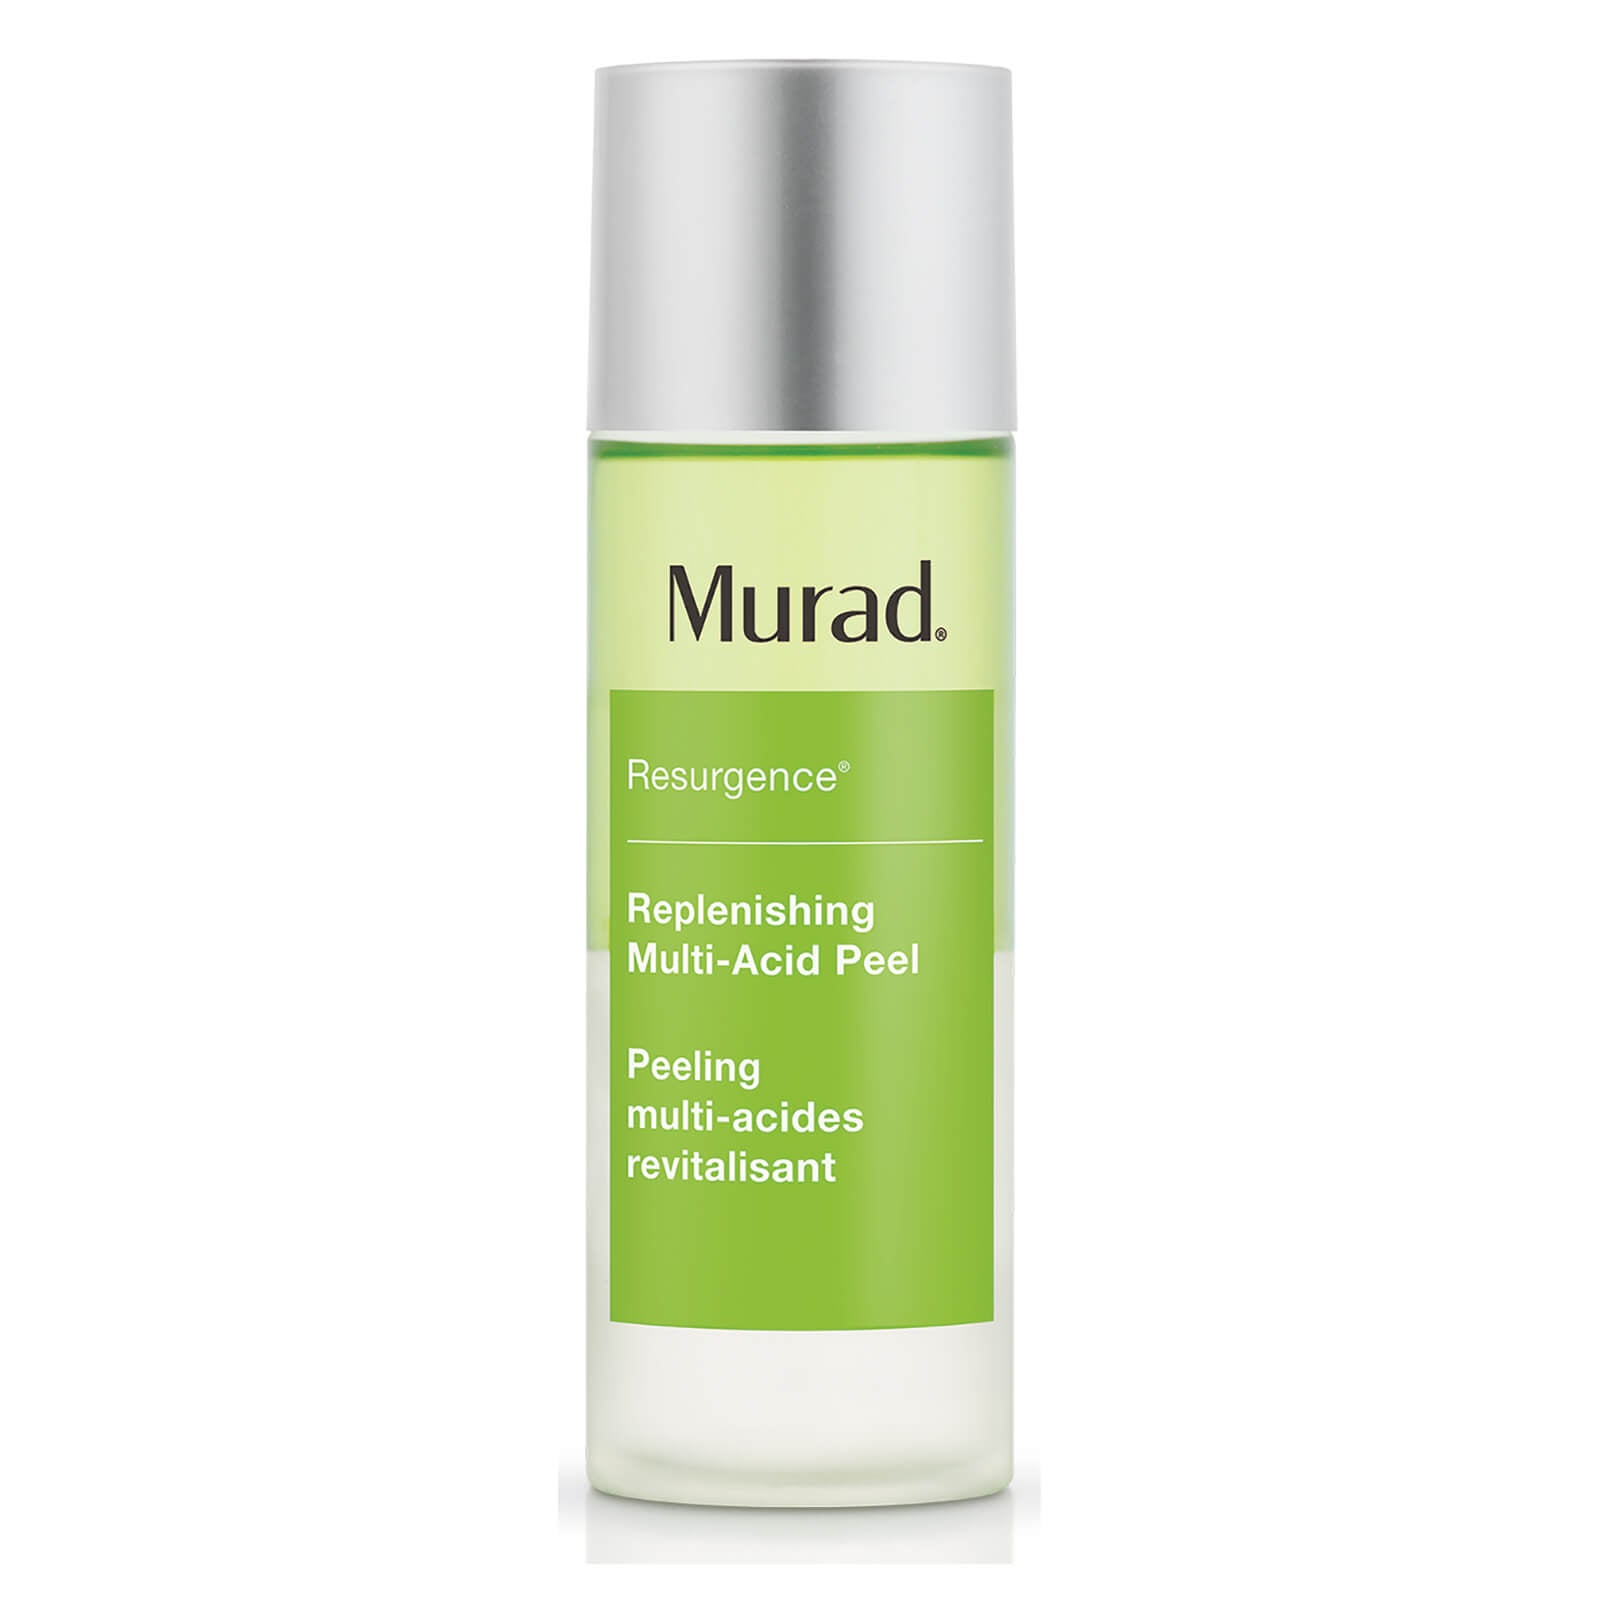 Replenishing Multi-Acid Peel - The Perfect Products